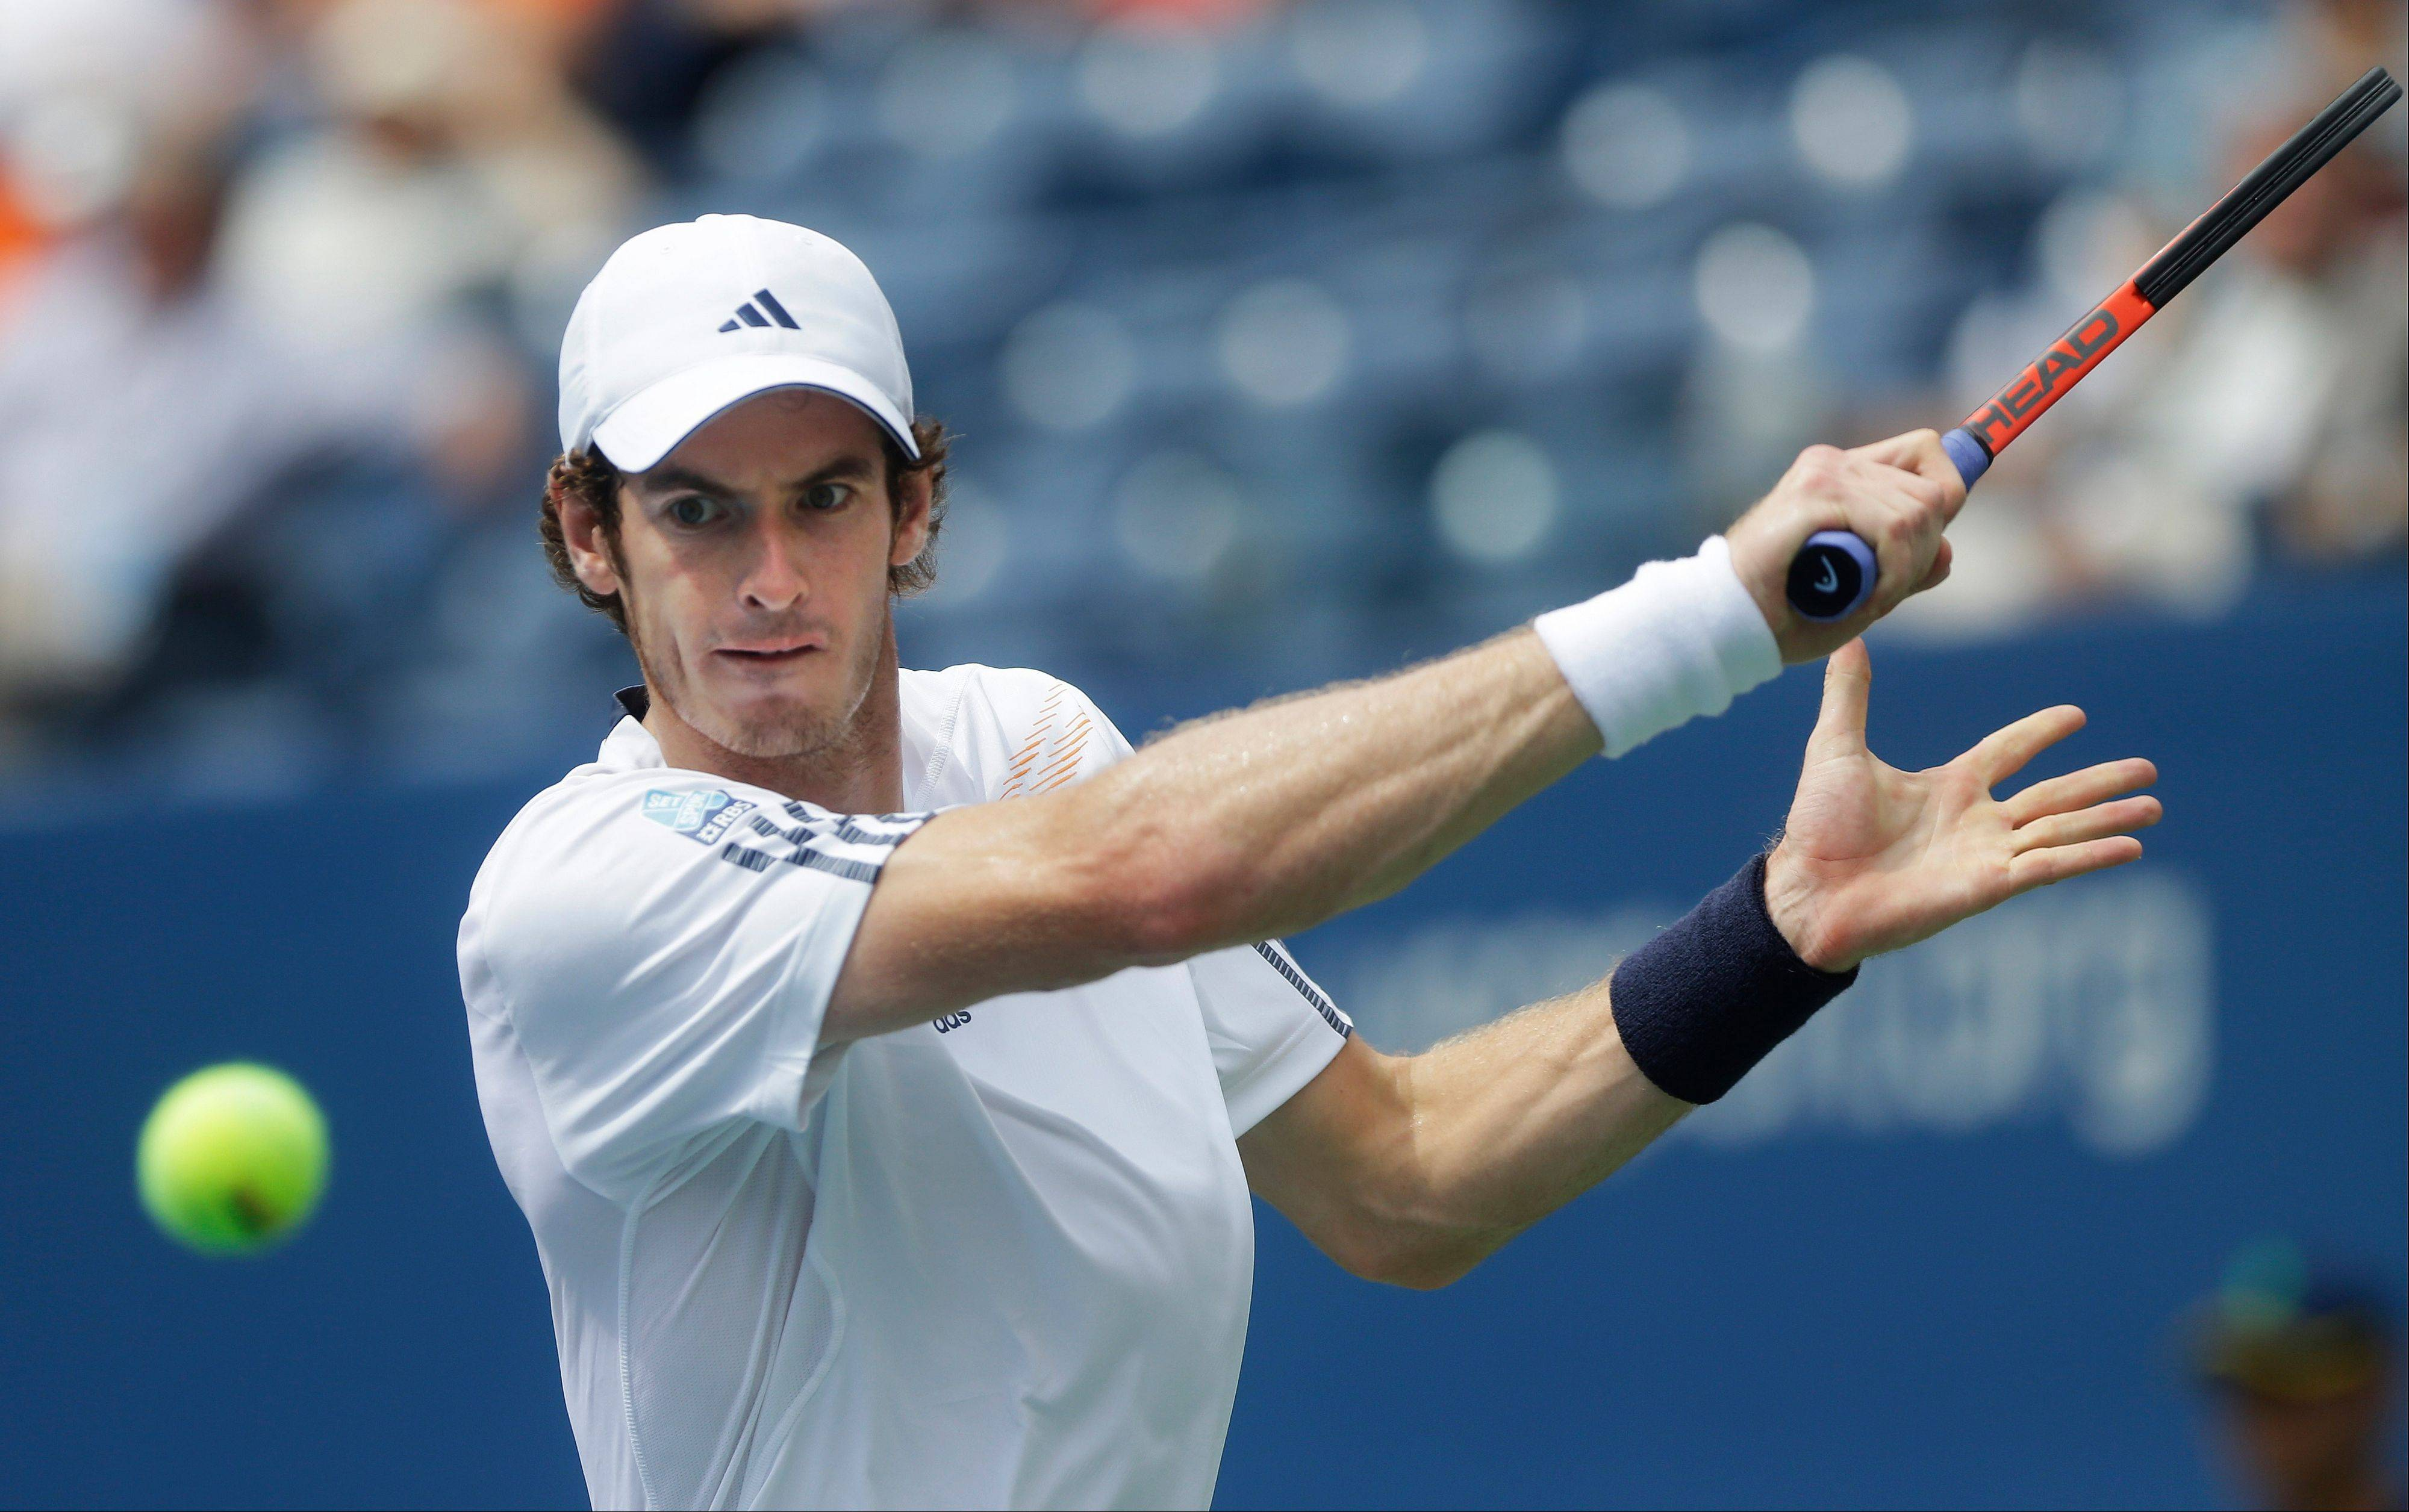 Britain's Andy Murray returns a shot to Czech Republic's Tomas Berdych during a semifinal match Saturday at the U.S. Open in New York.